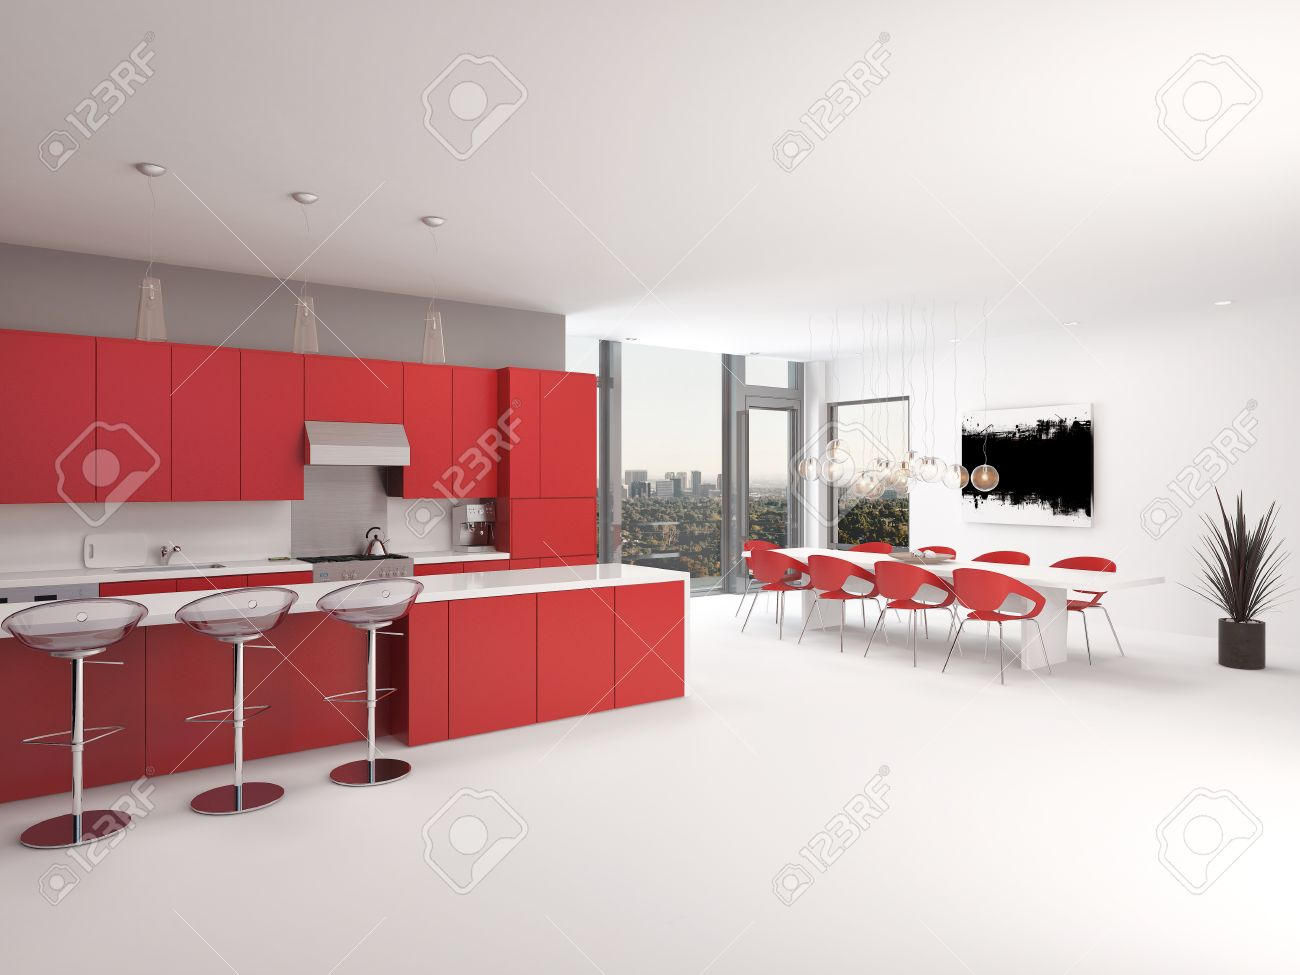 modern open plan red kitchen interior with a long counter with